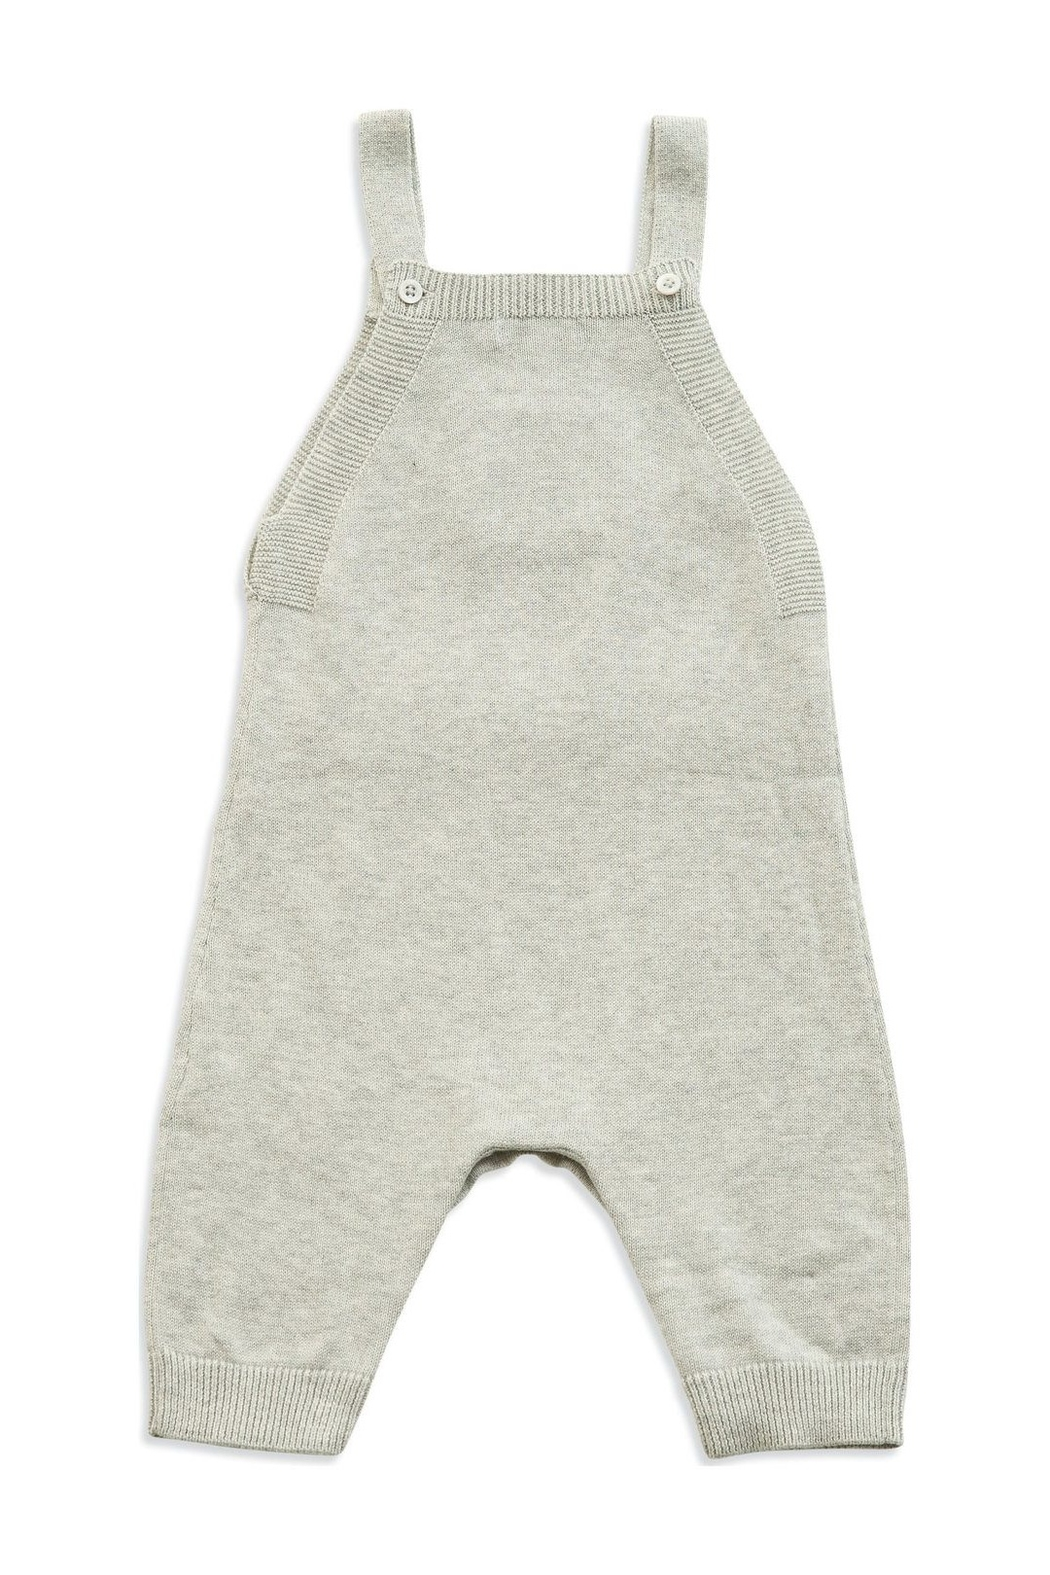 Angel Dear Knit Overall - Front Full Image